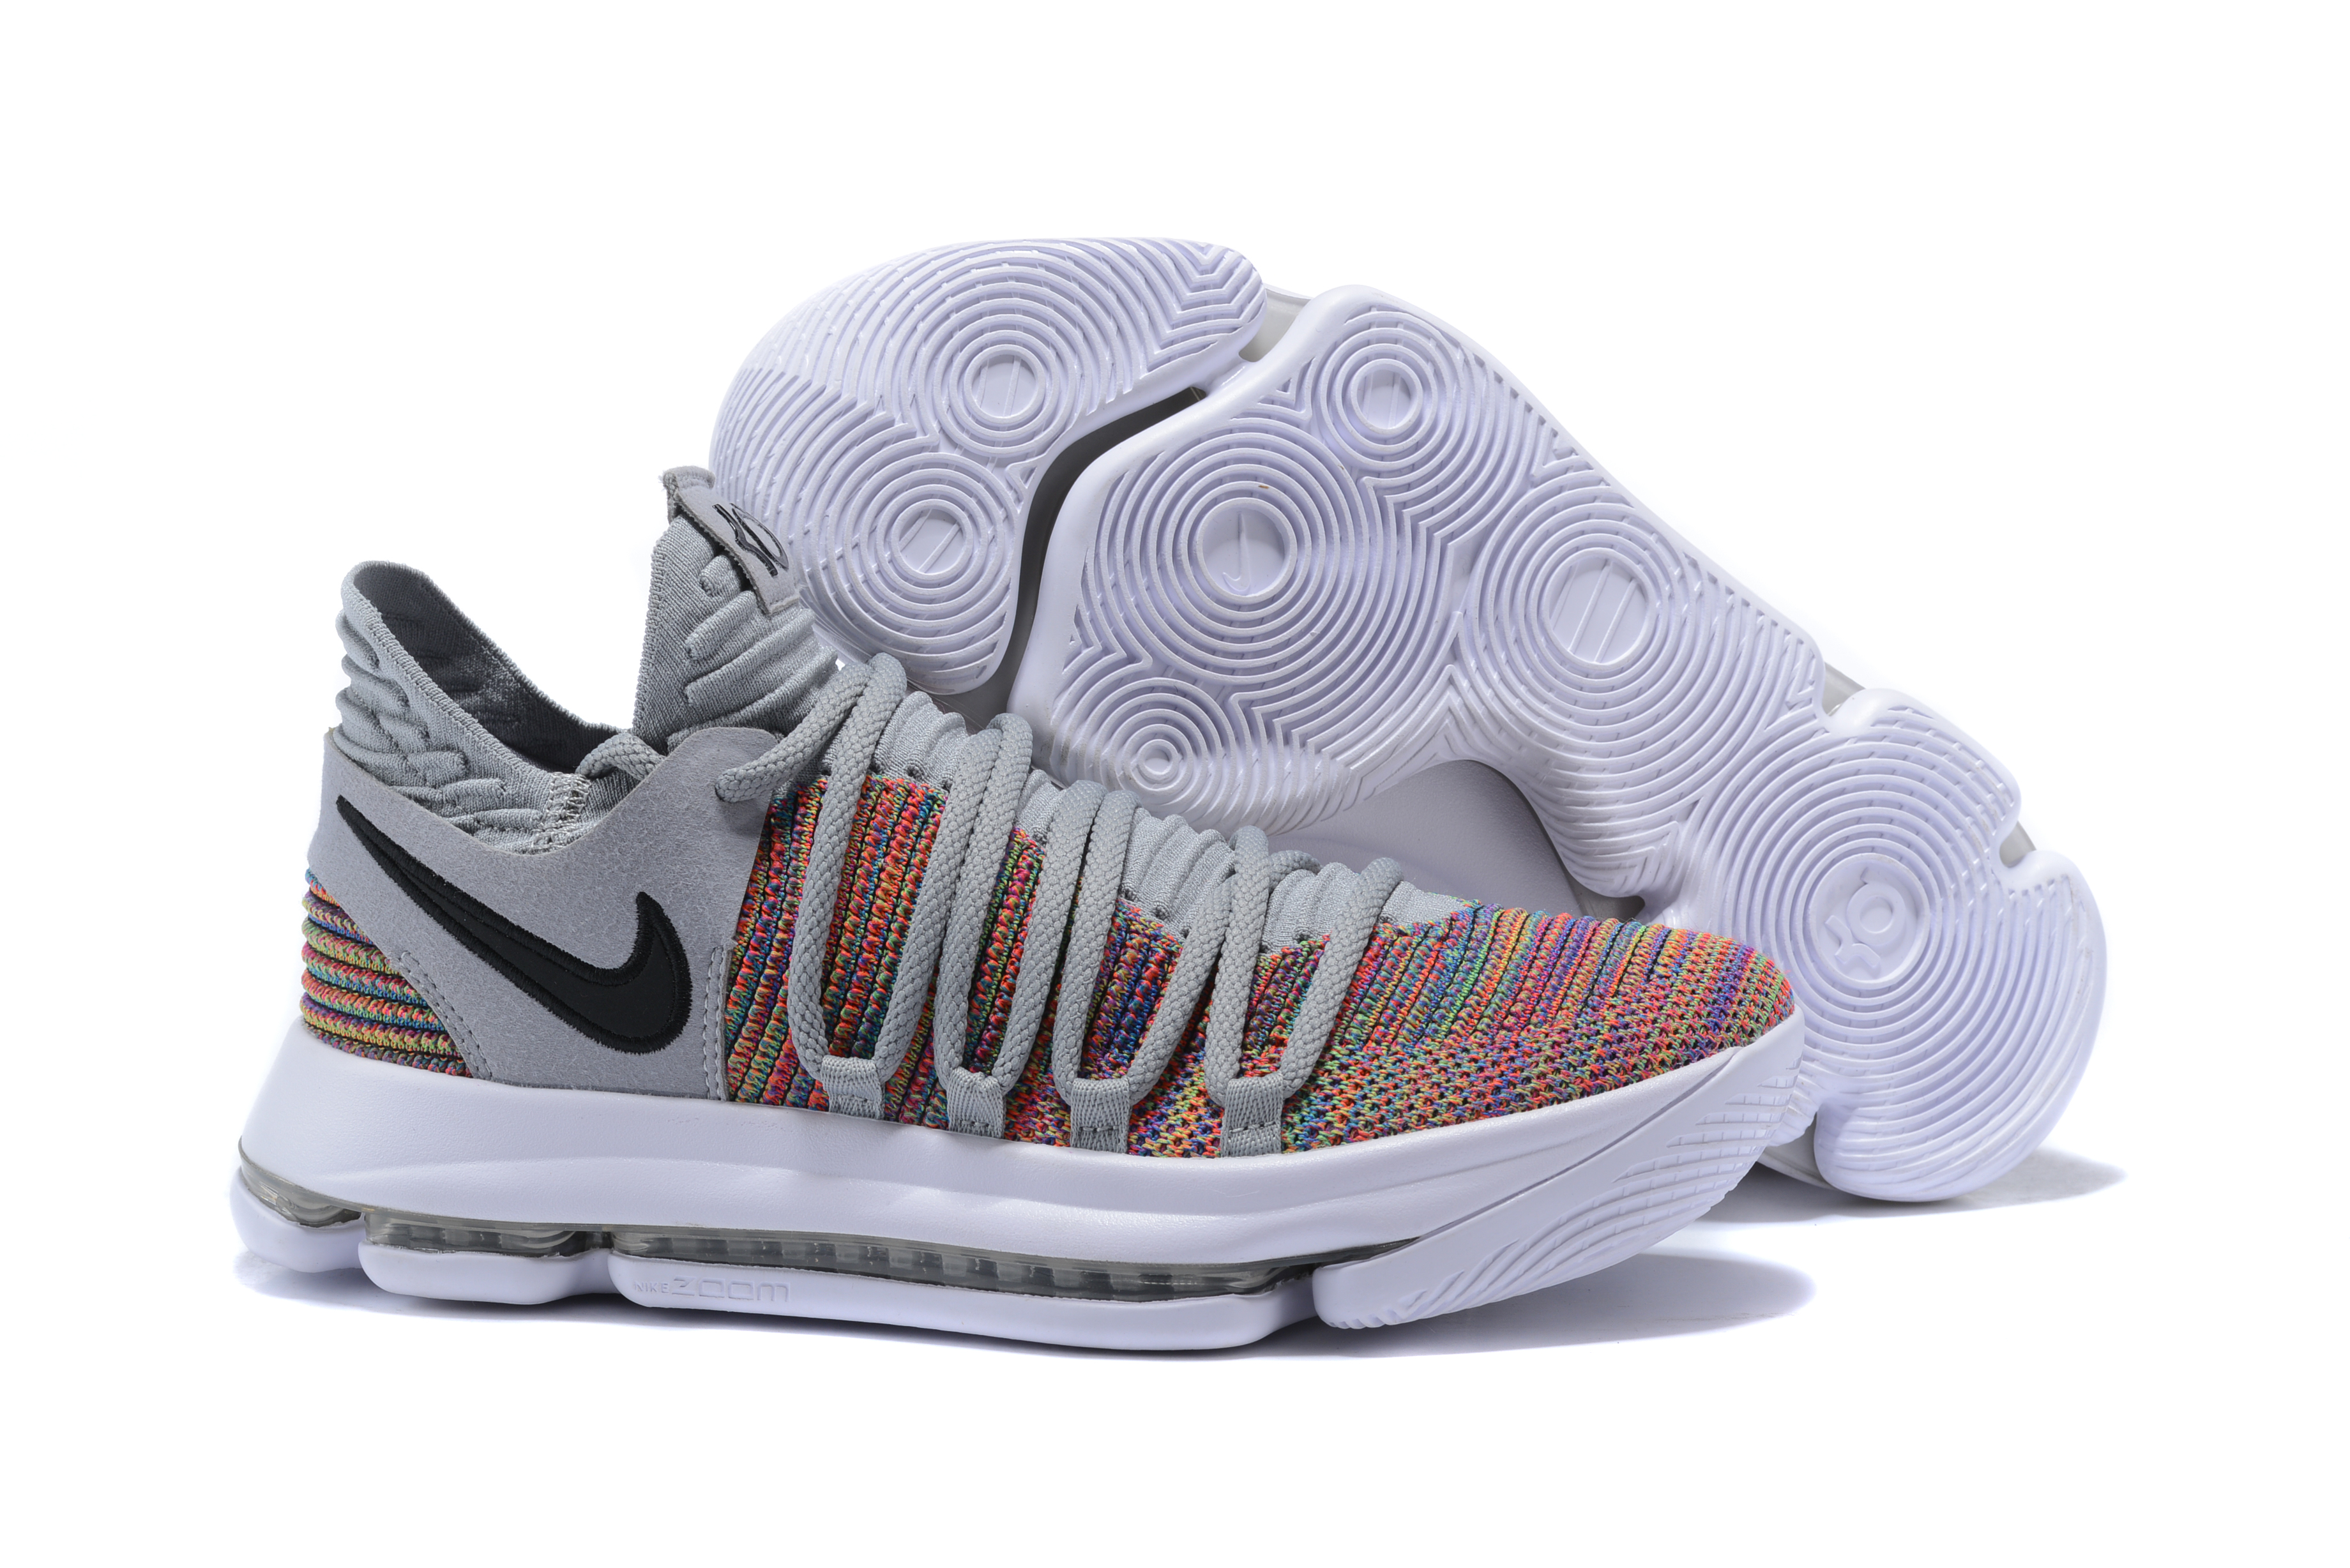 New Nike KD 10 Grey Colorful Shoes